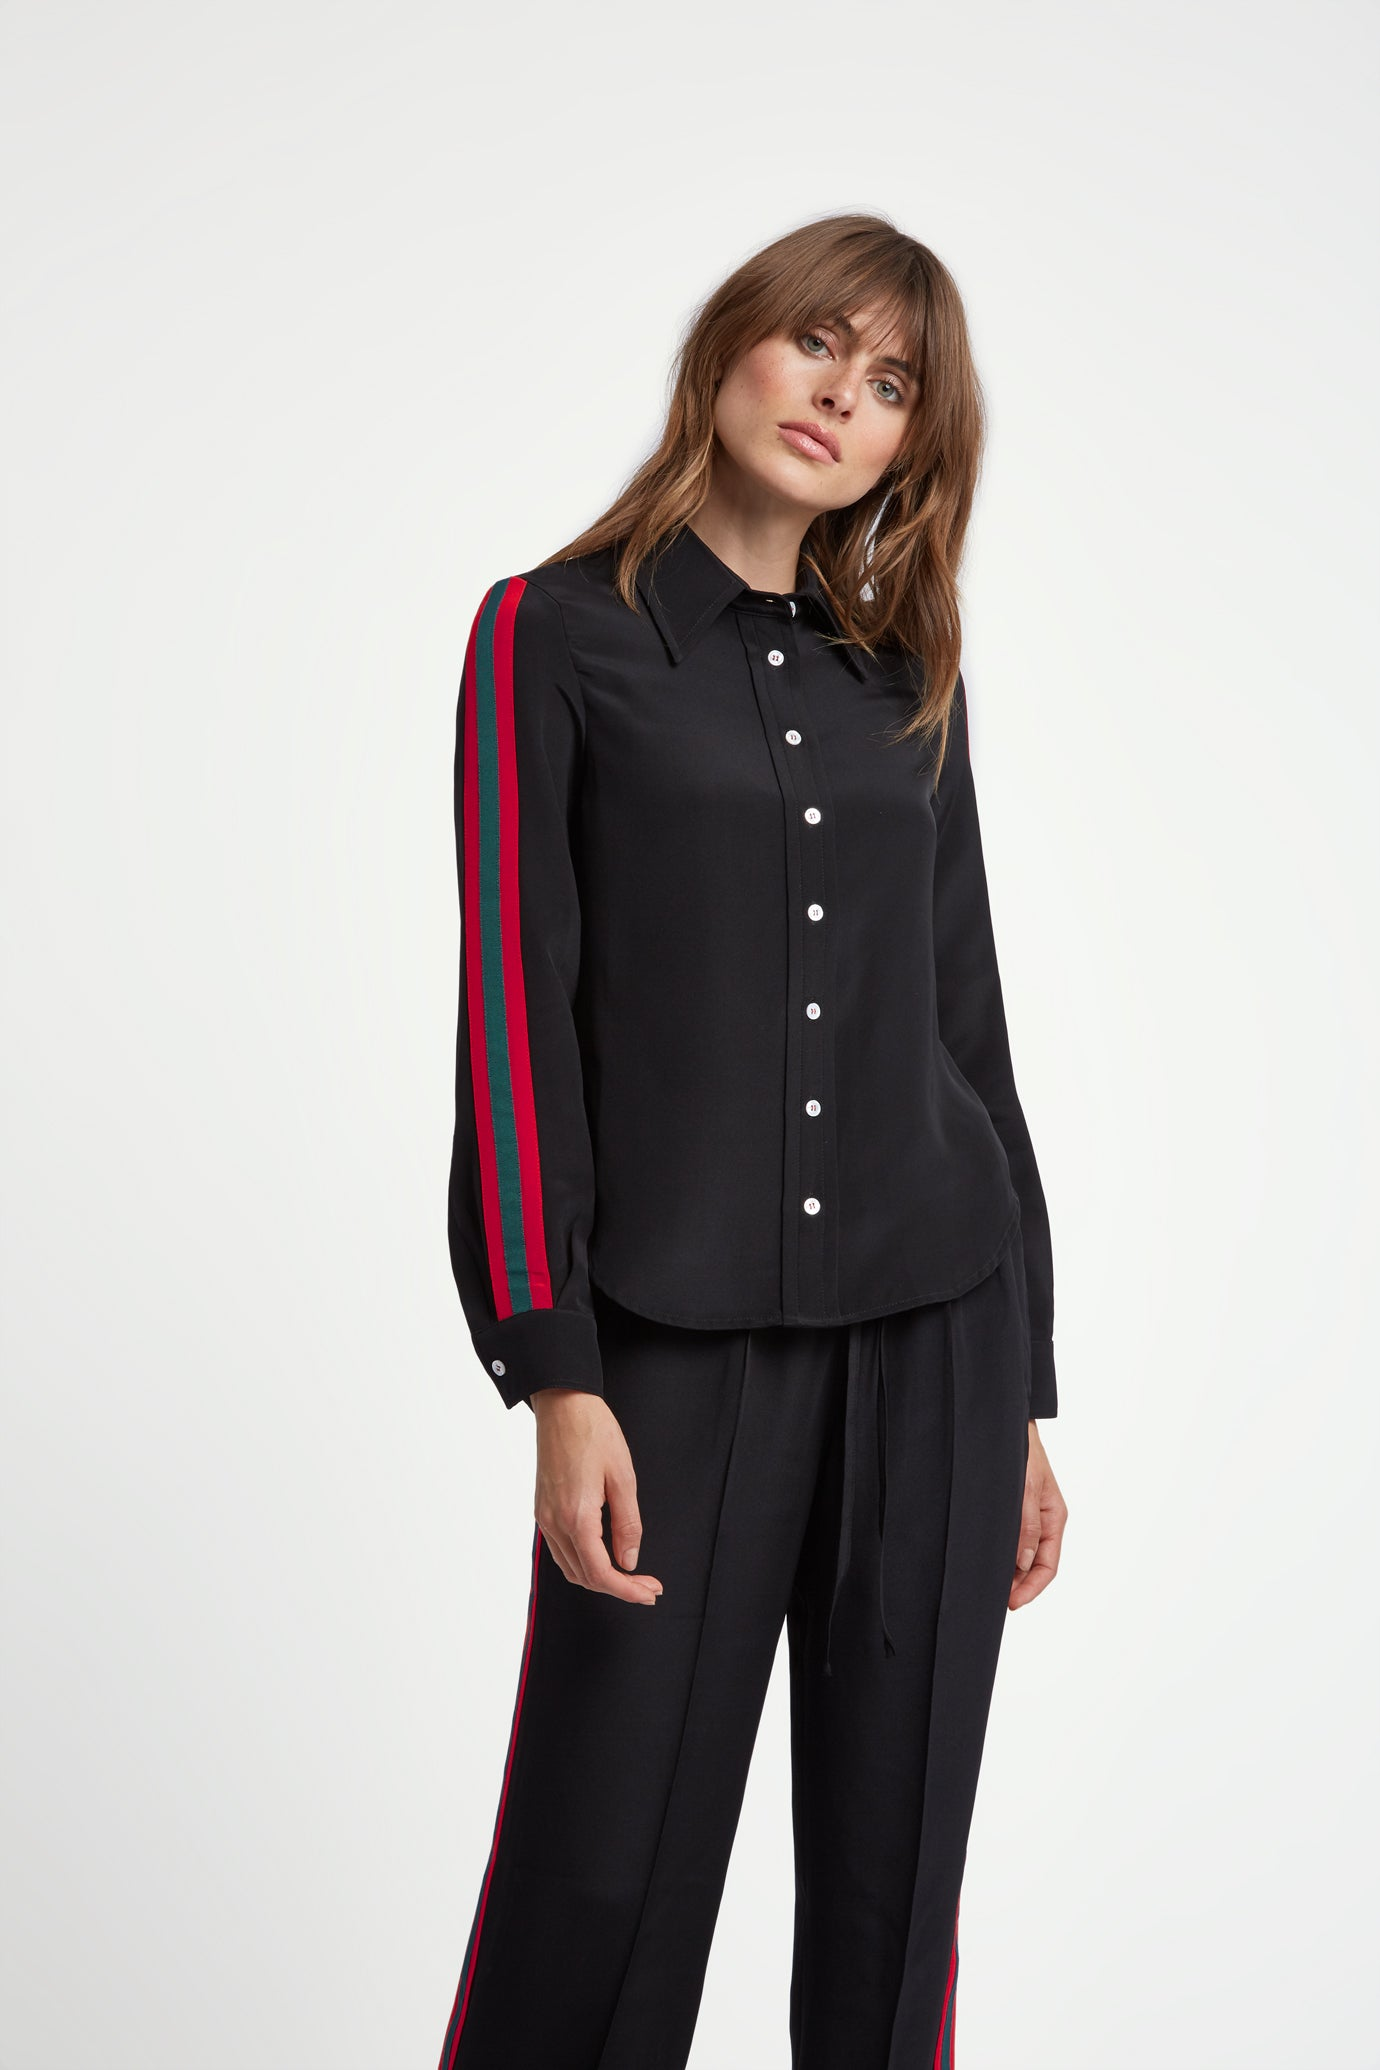 The Serena Shirt - Black, Poppy Red & Green Silk